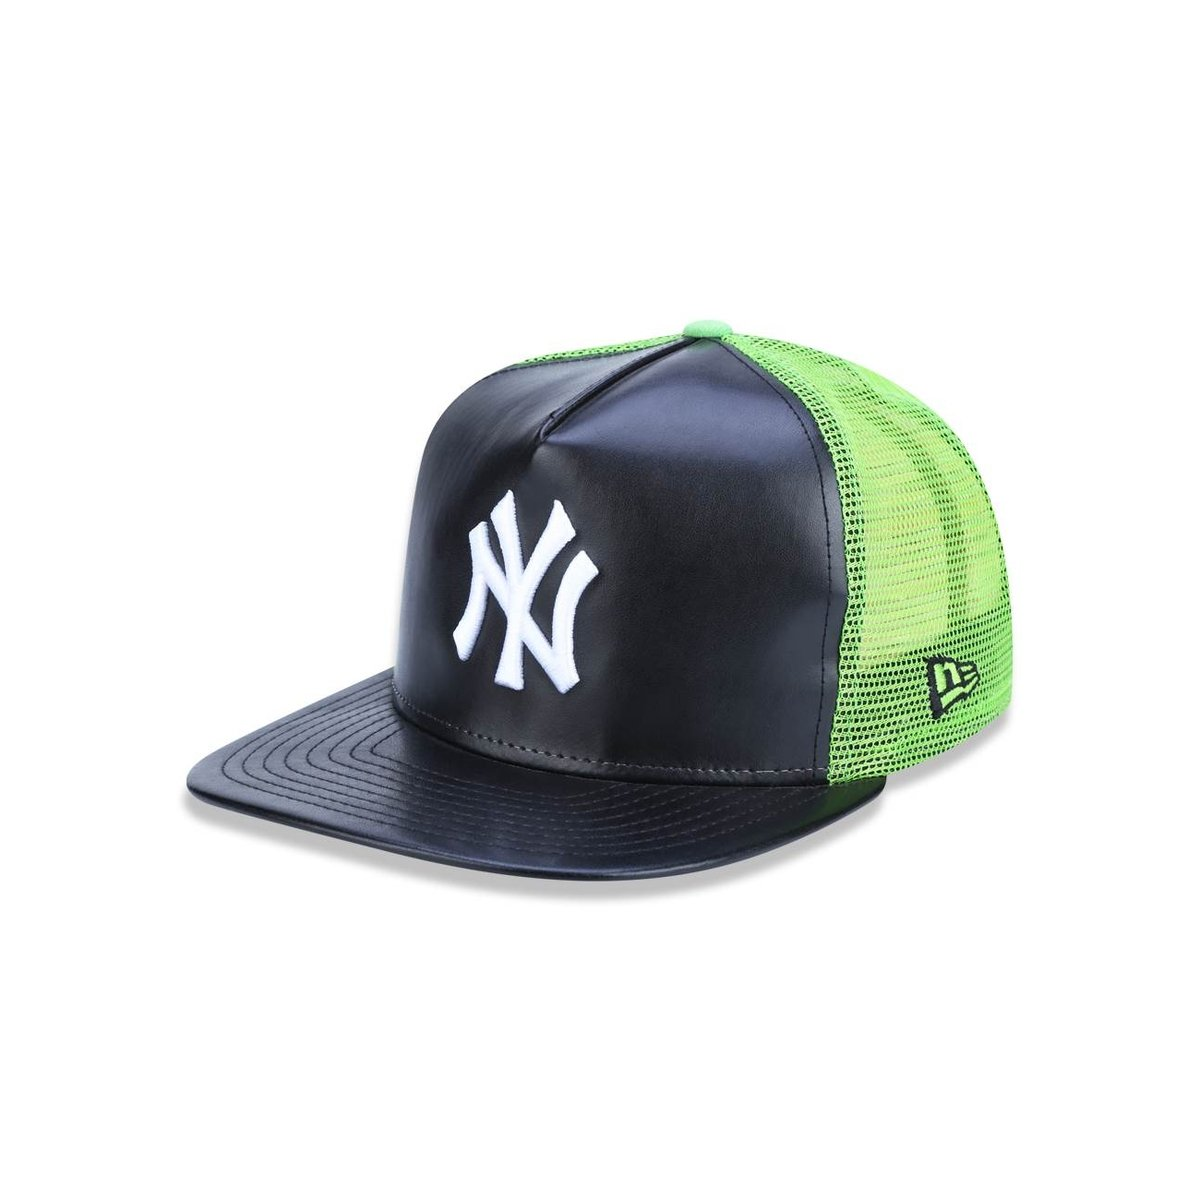 Boné 950 A-frame New York Yankees MLB Aba Reta New Era - Compre ... c3de58347d5